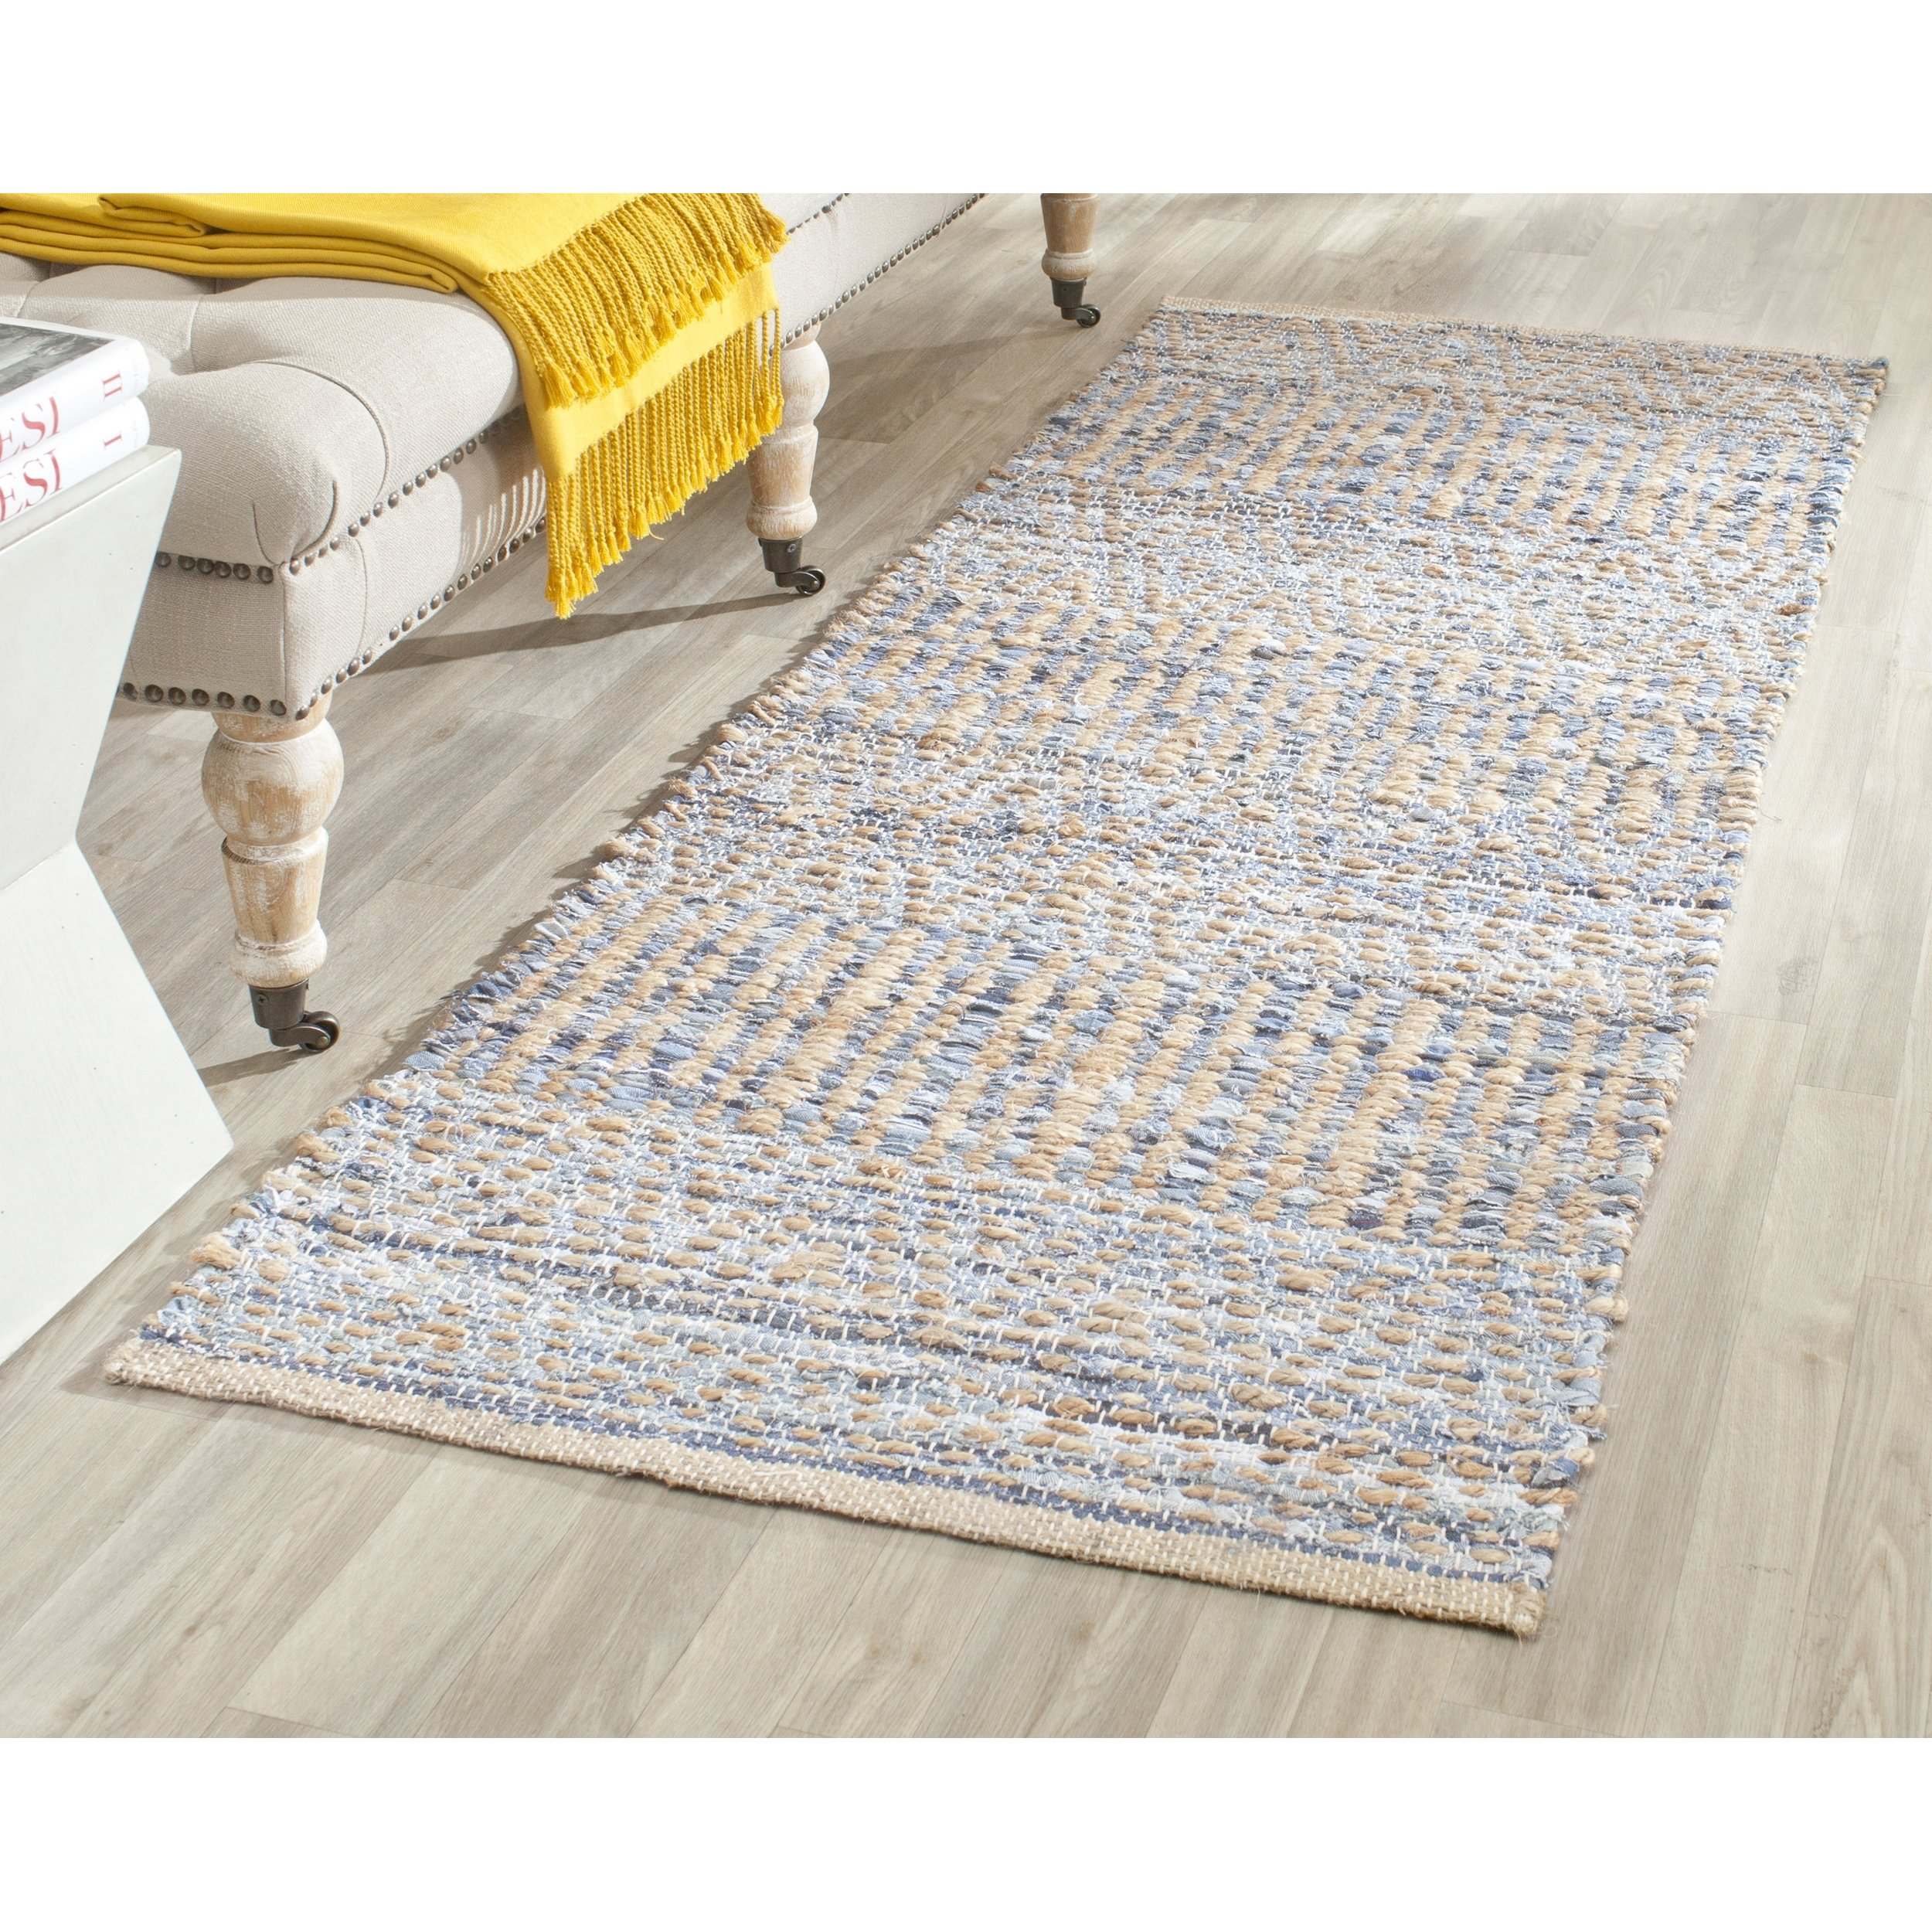 Safavieh Cape Cod Collection CAP353A Hand Woven Flatweave Natural and Blue Jute Runner (2'3'' x 14') by Safavieh